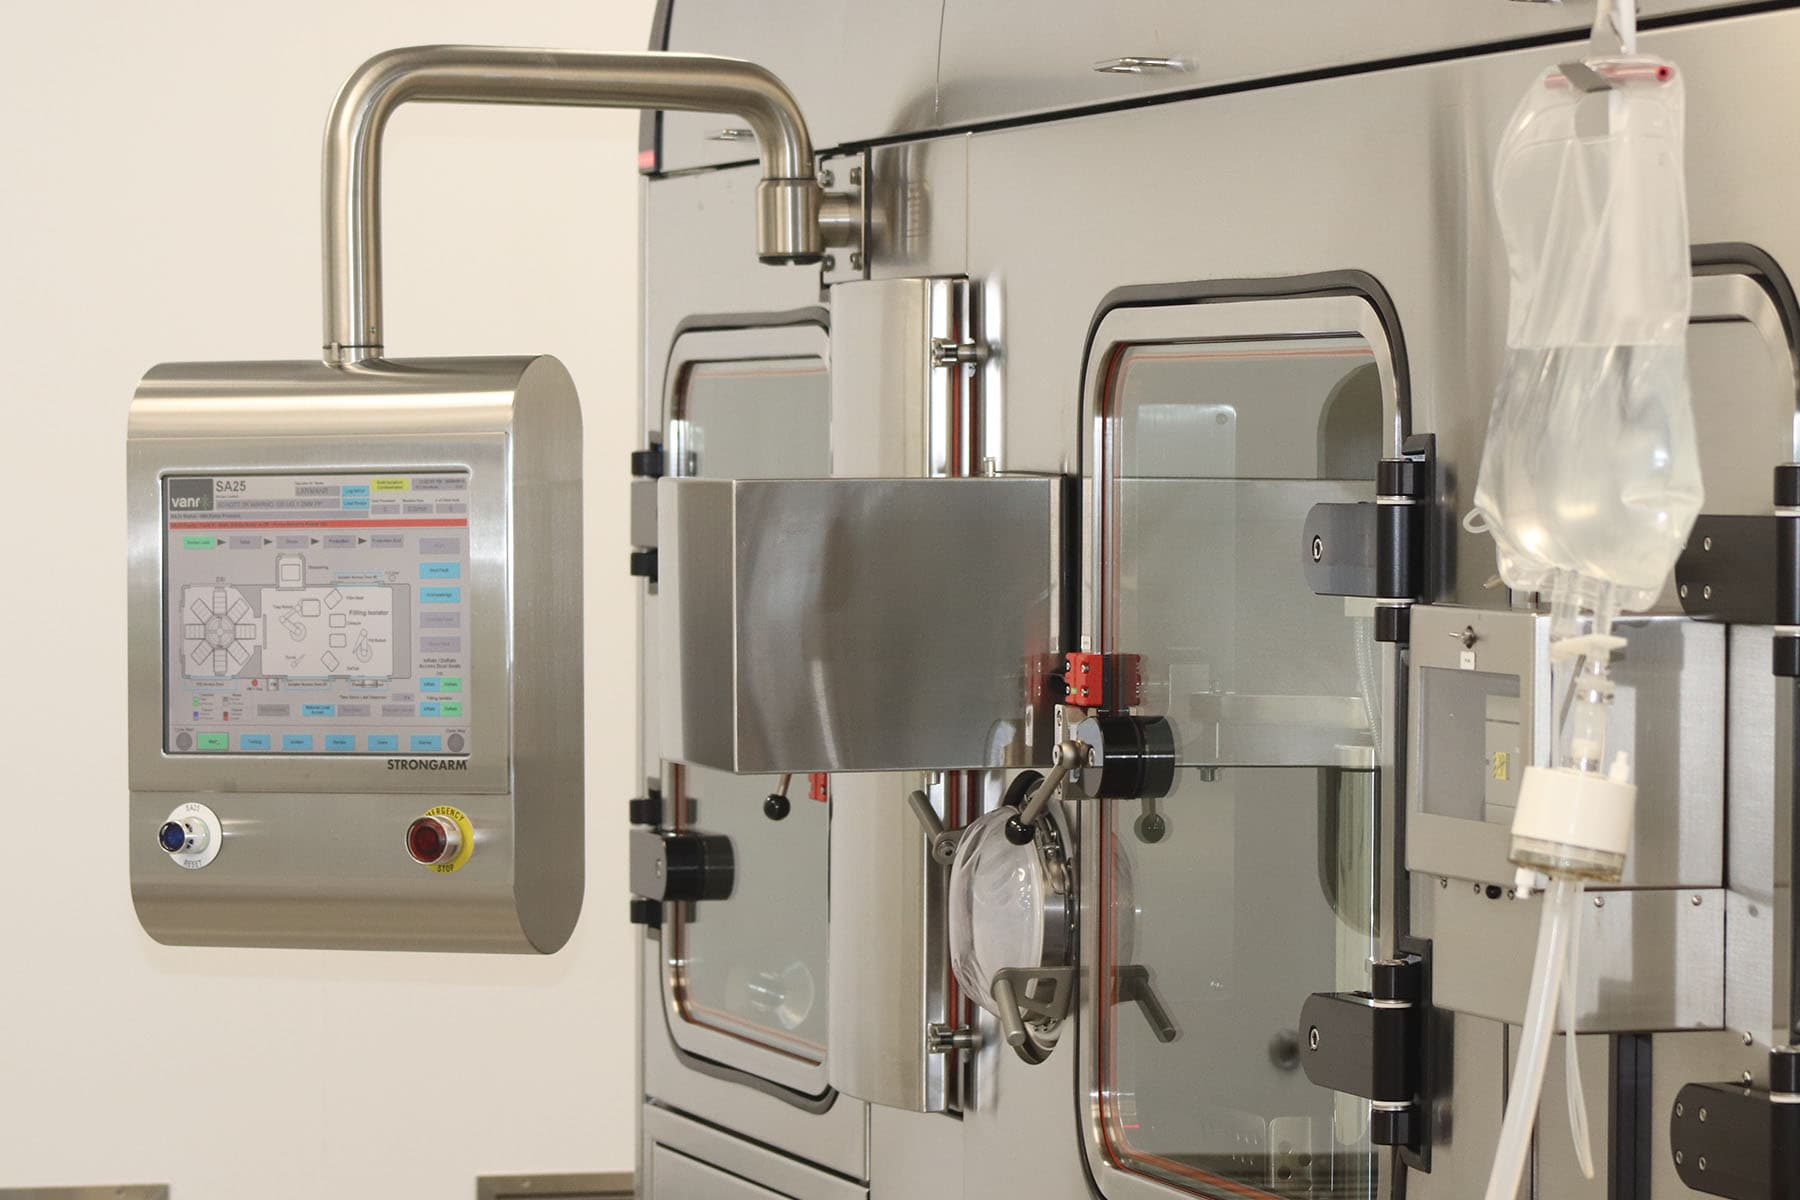 The SA25's HMI provides easy access to all process controls, recipes and batch data.